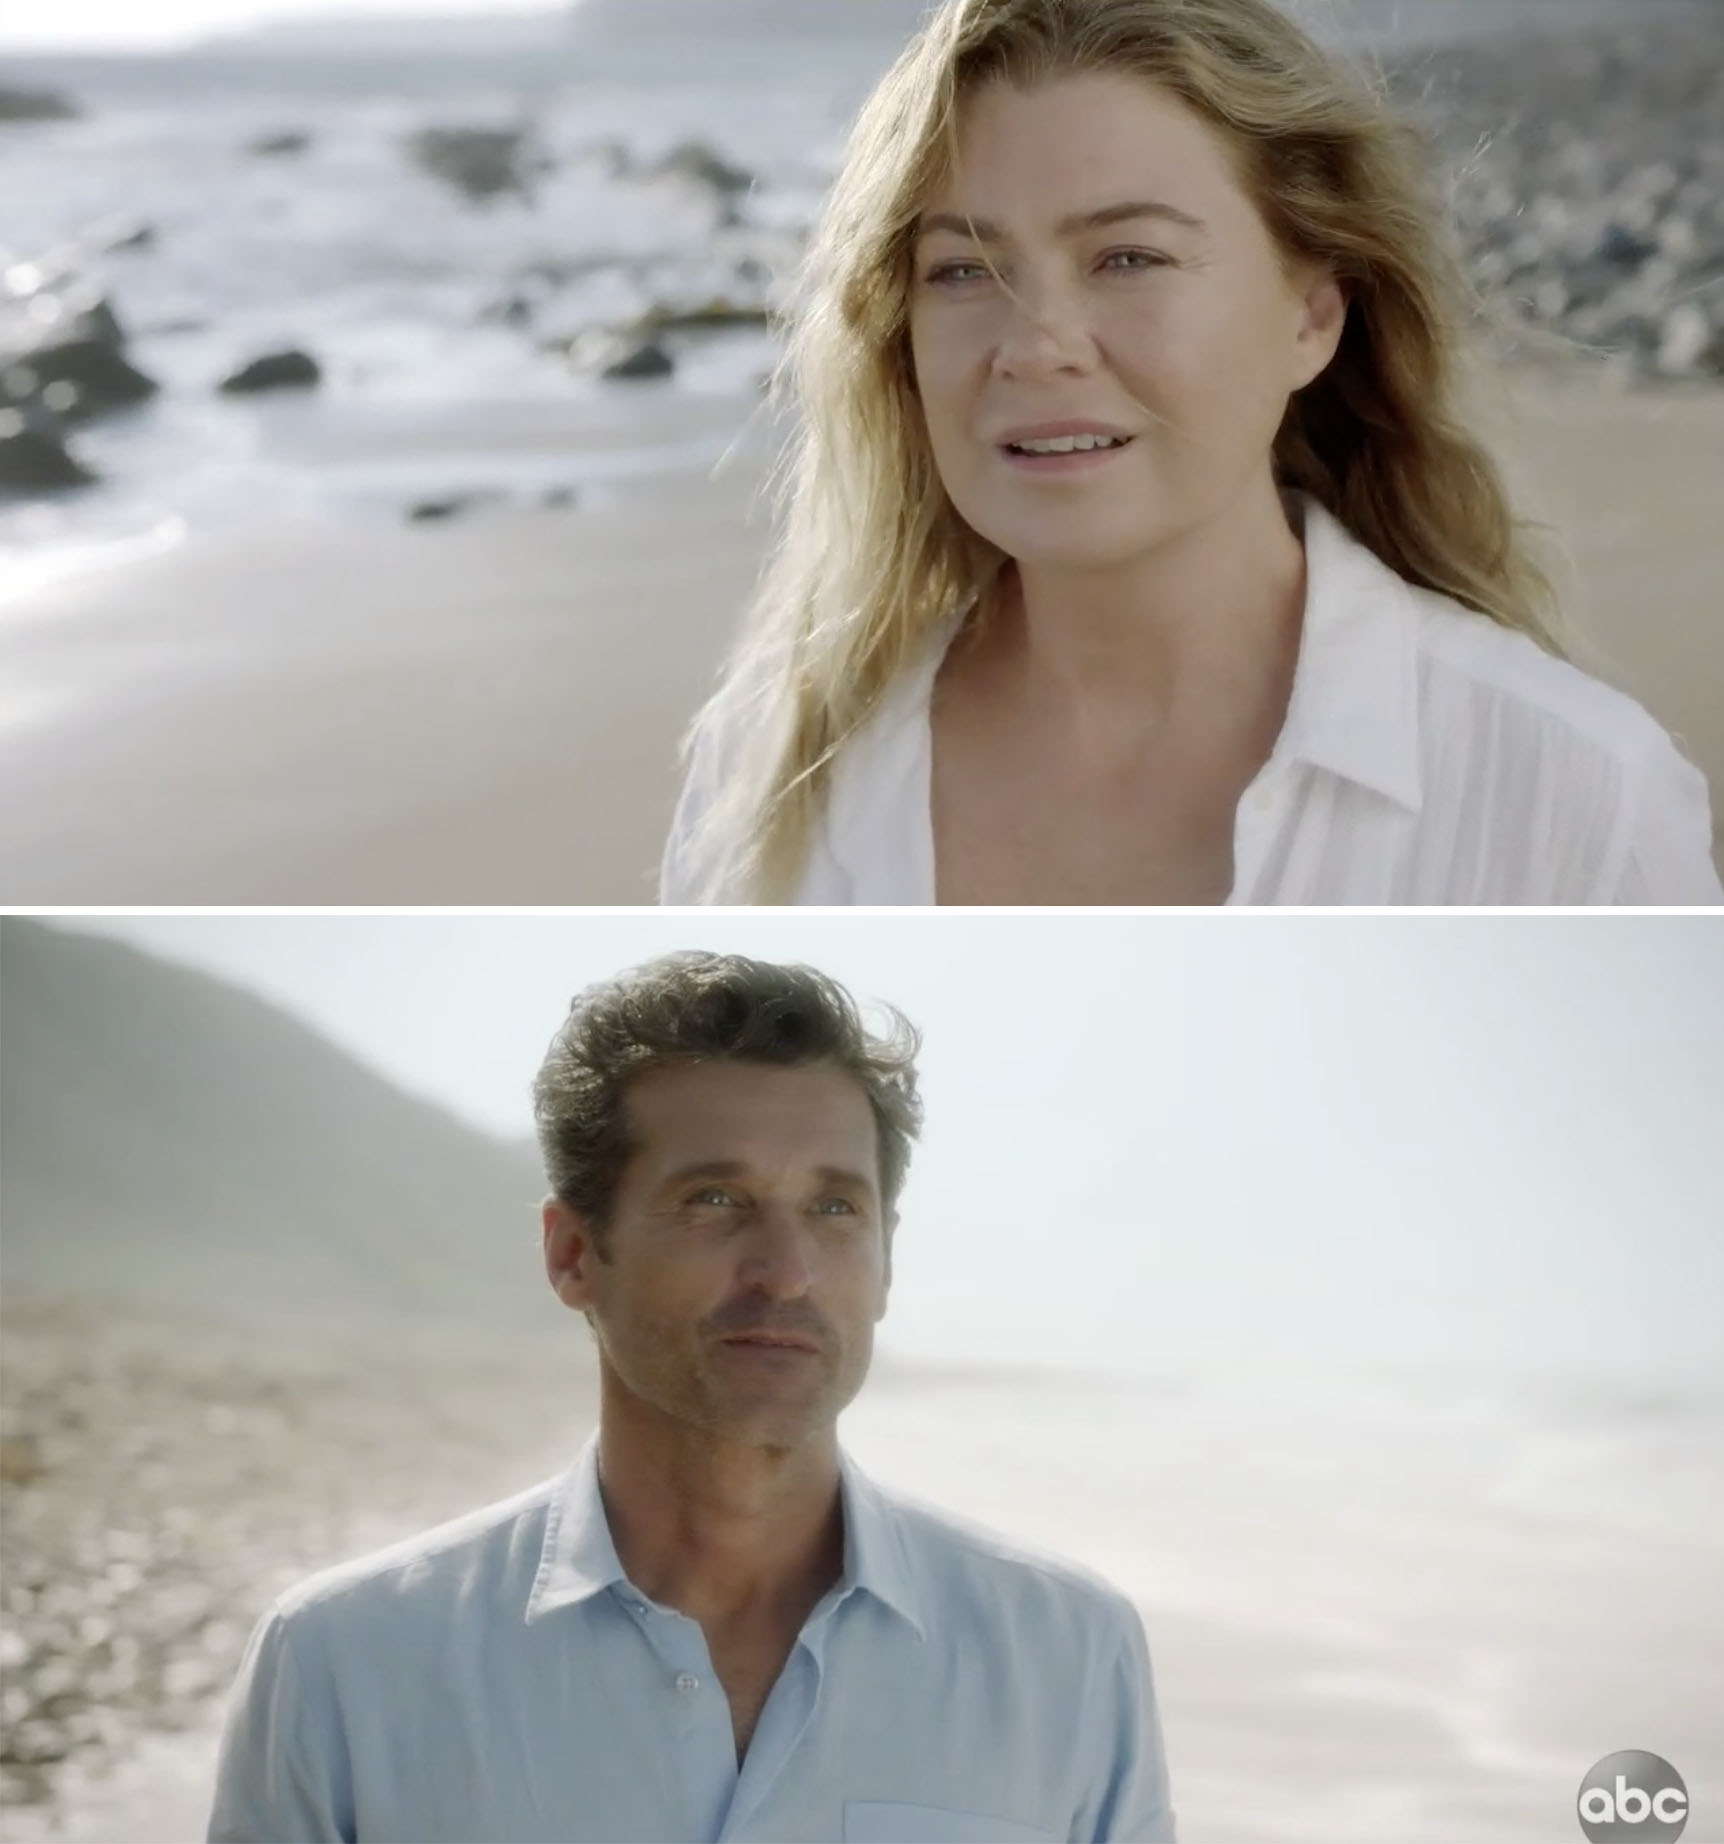 Meredith and Derek staring at each other